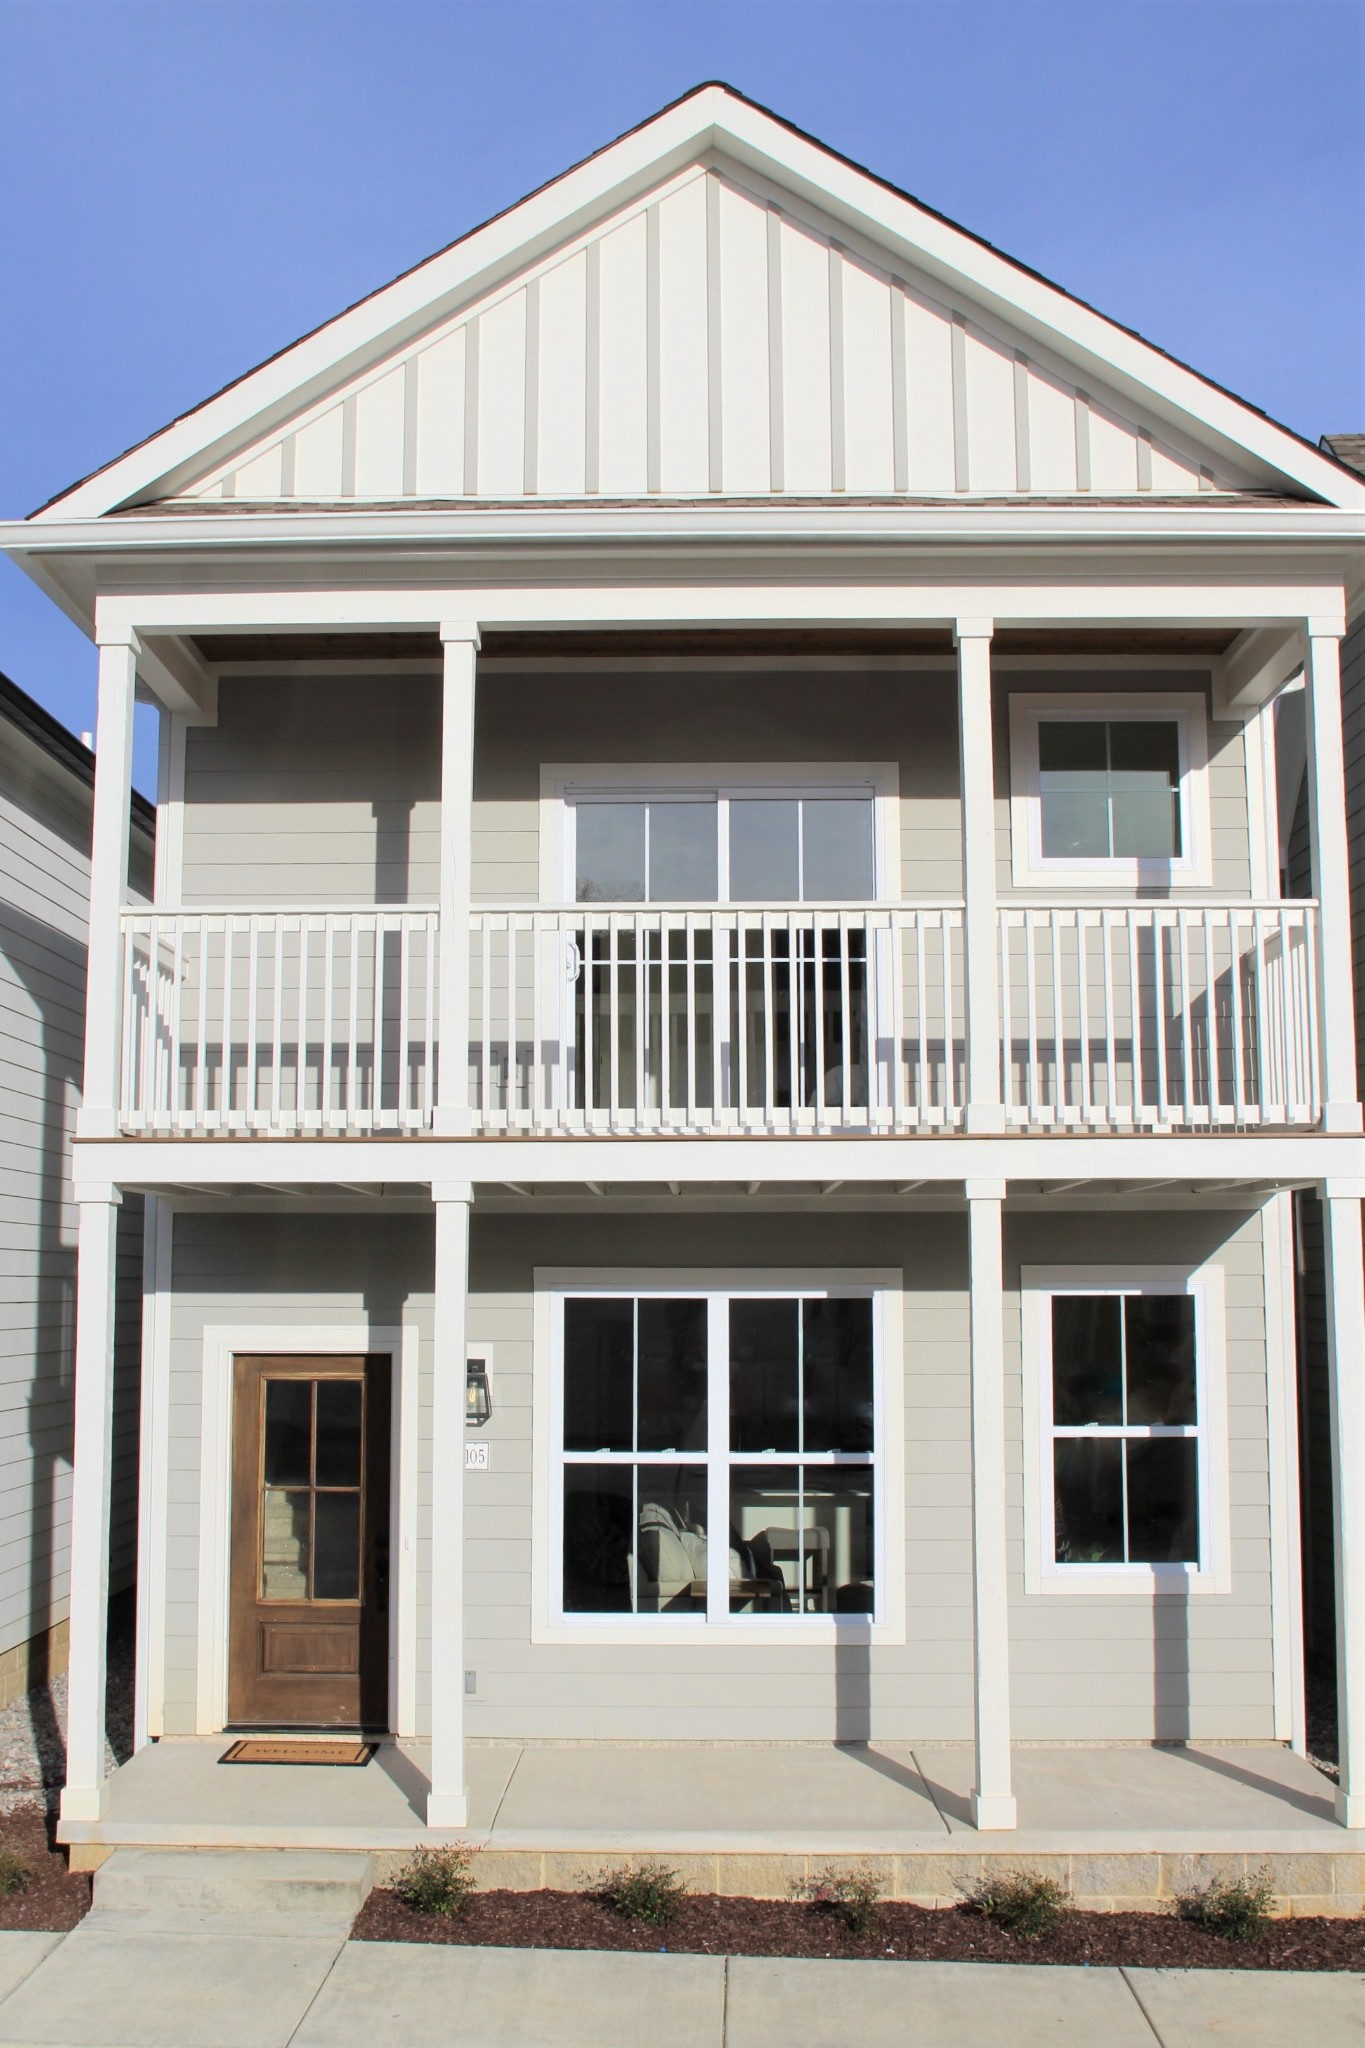 105 Allison Way, Cookeville, TN 38501 - Cookeville, TN real estate listing